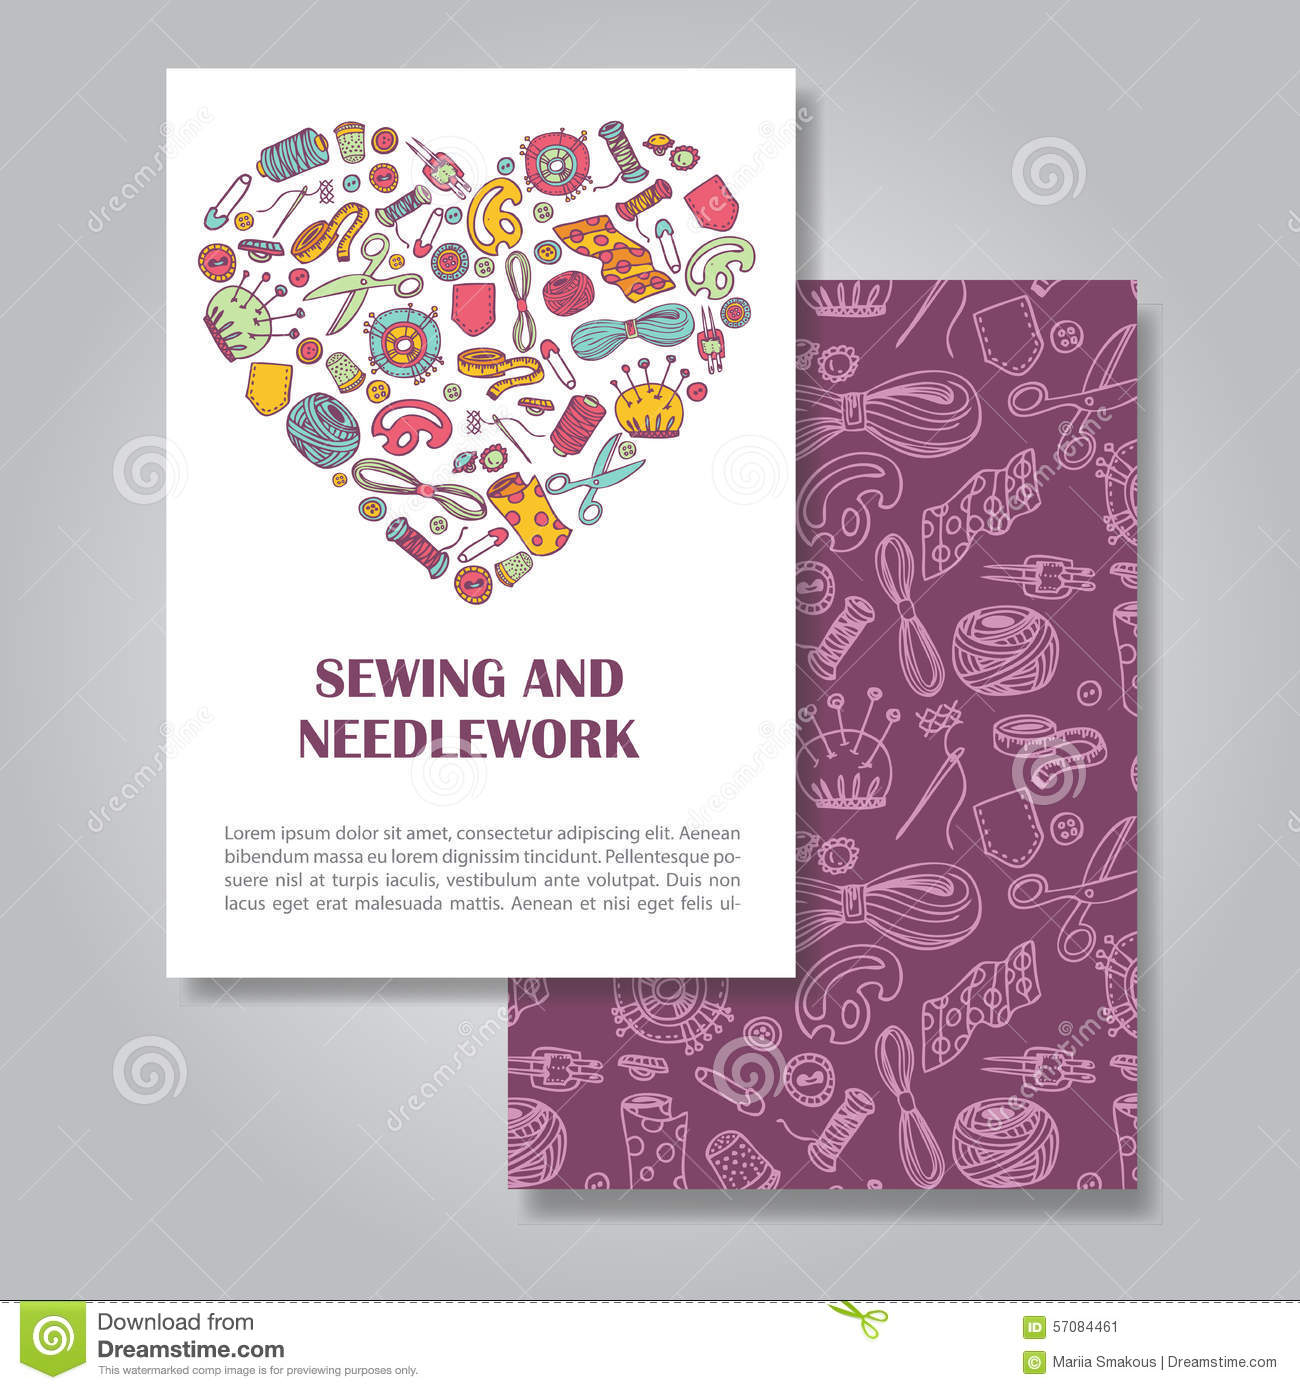 ... template for card, letter, banner, flyer.Can by used to promote your